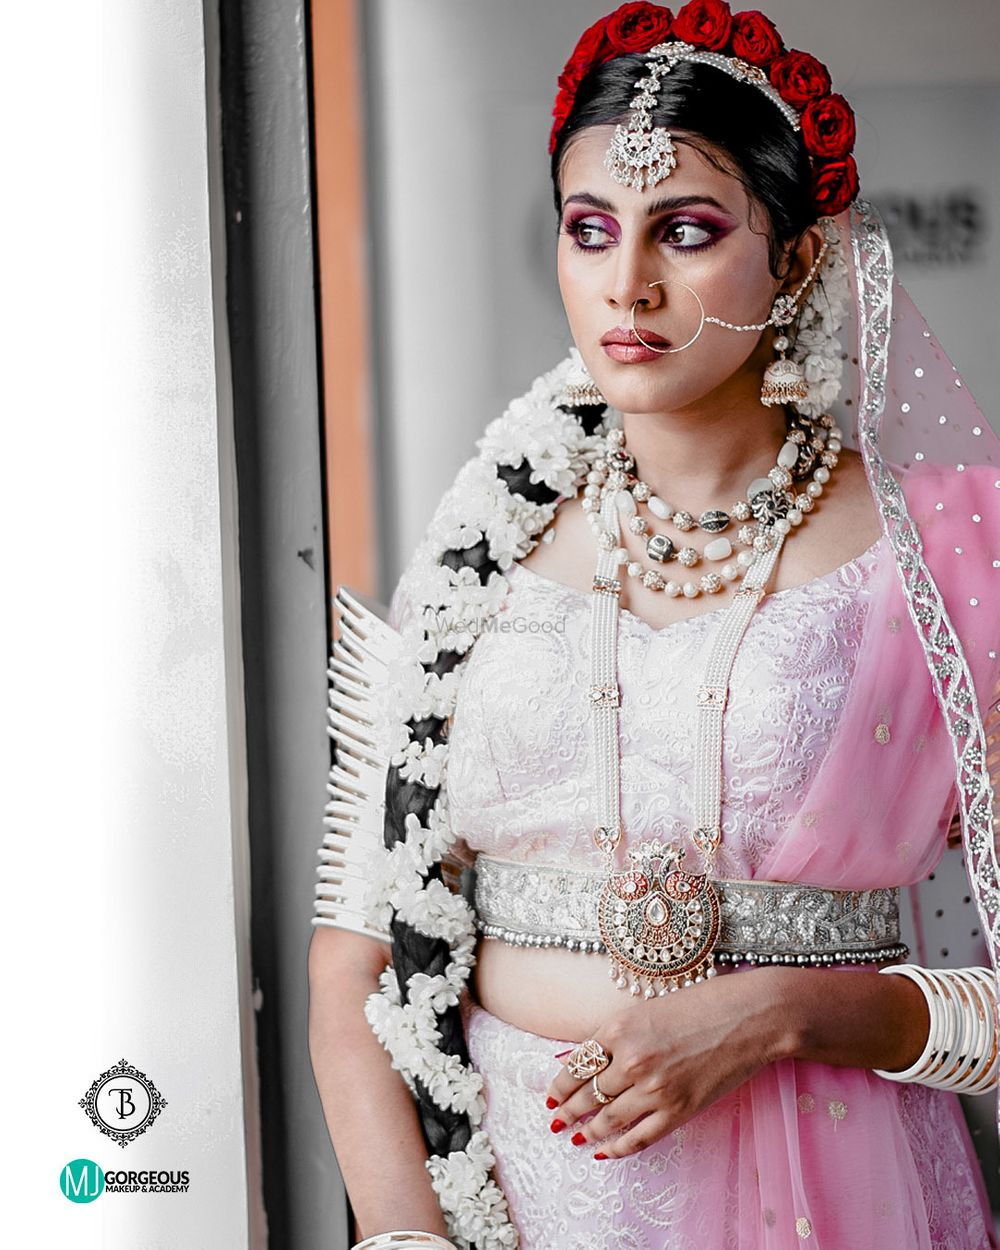 Photo From North Indian & Bengali Brides - By MJ Gorgeous Makeup & Academy